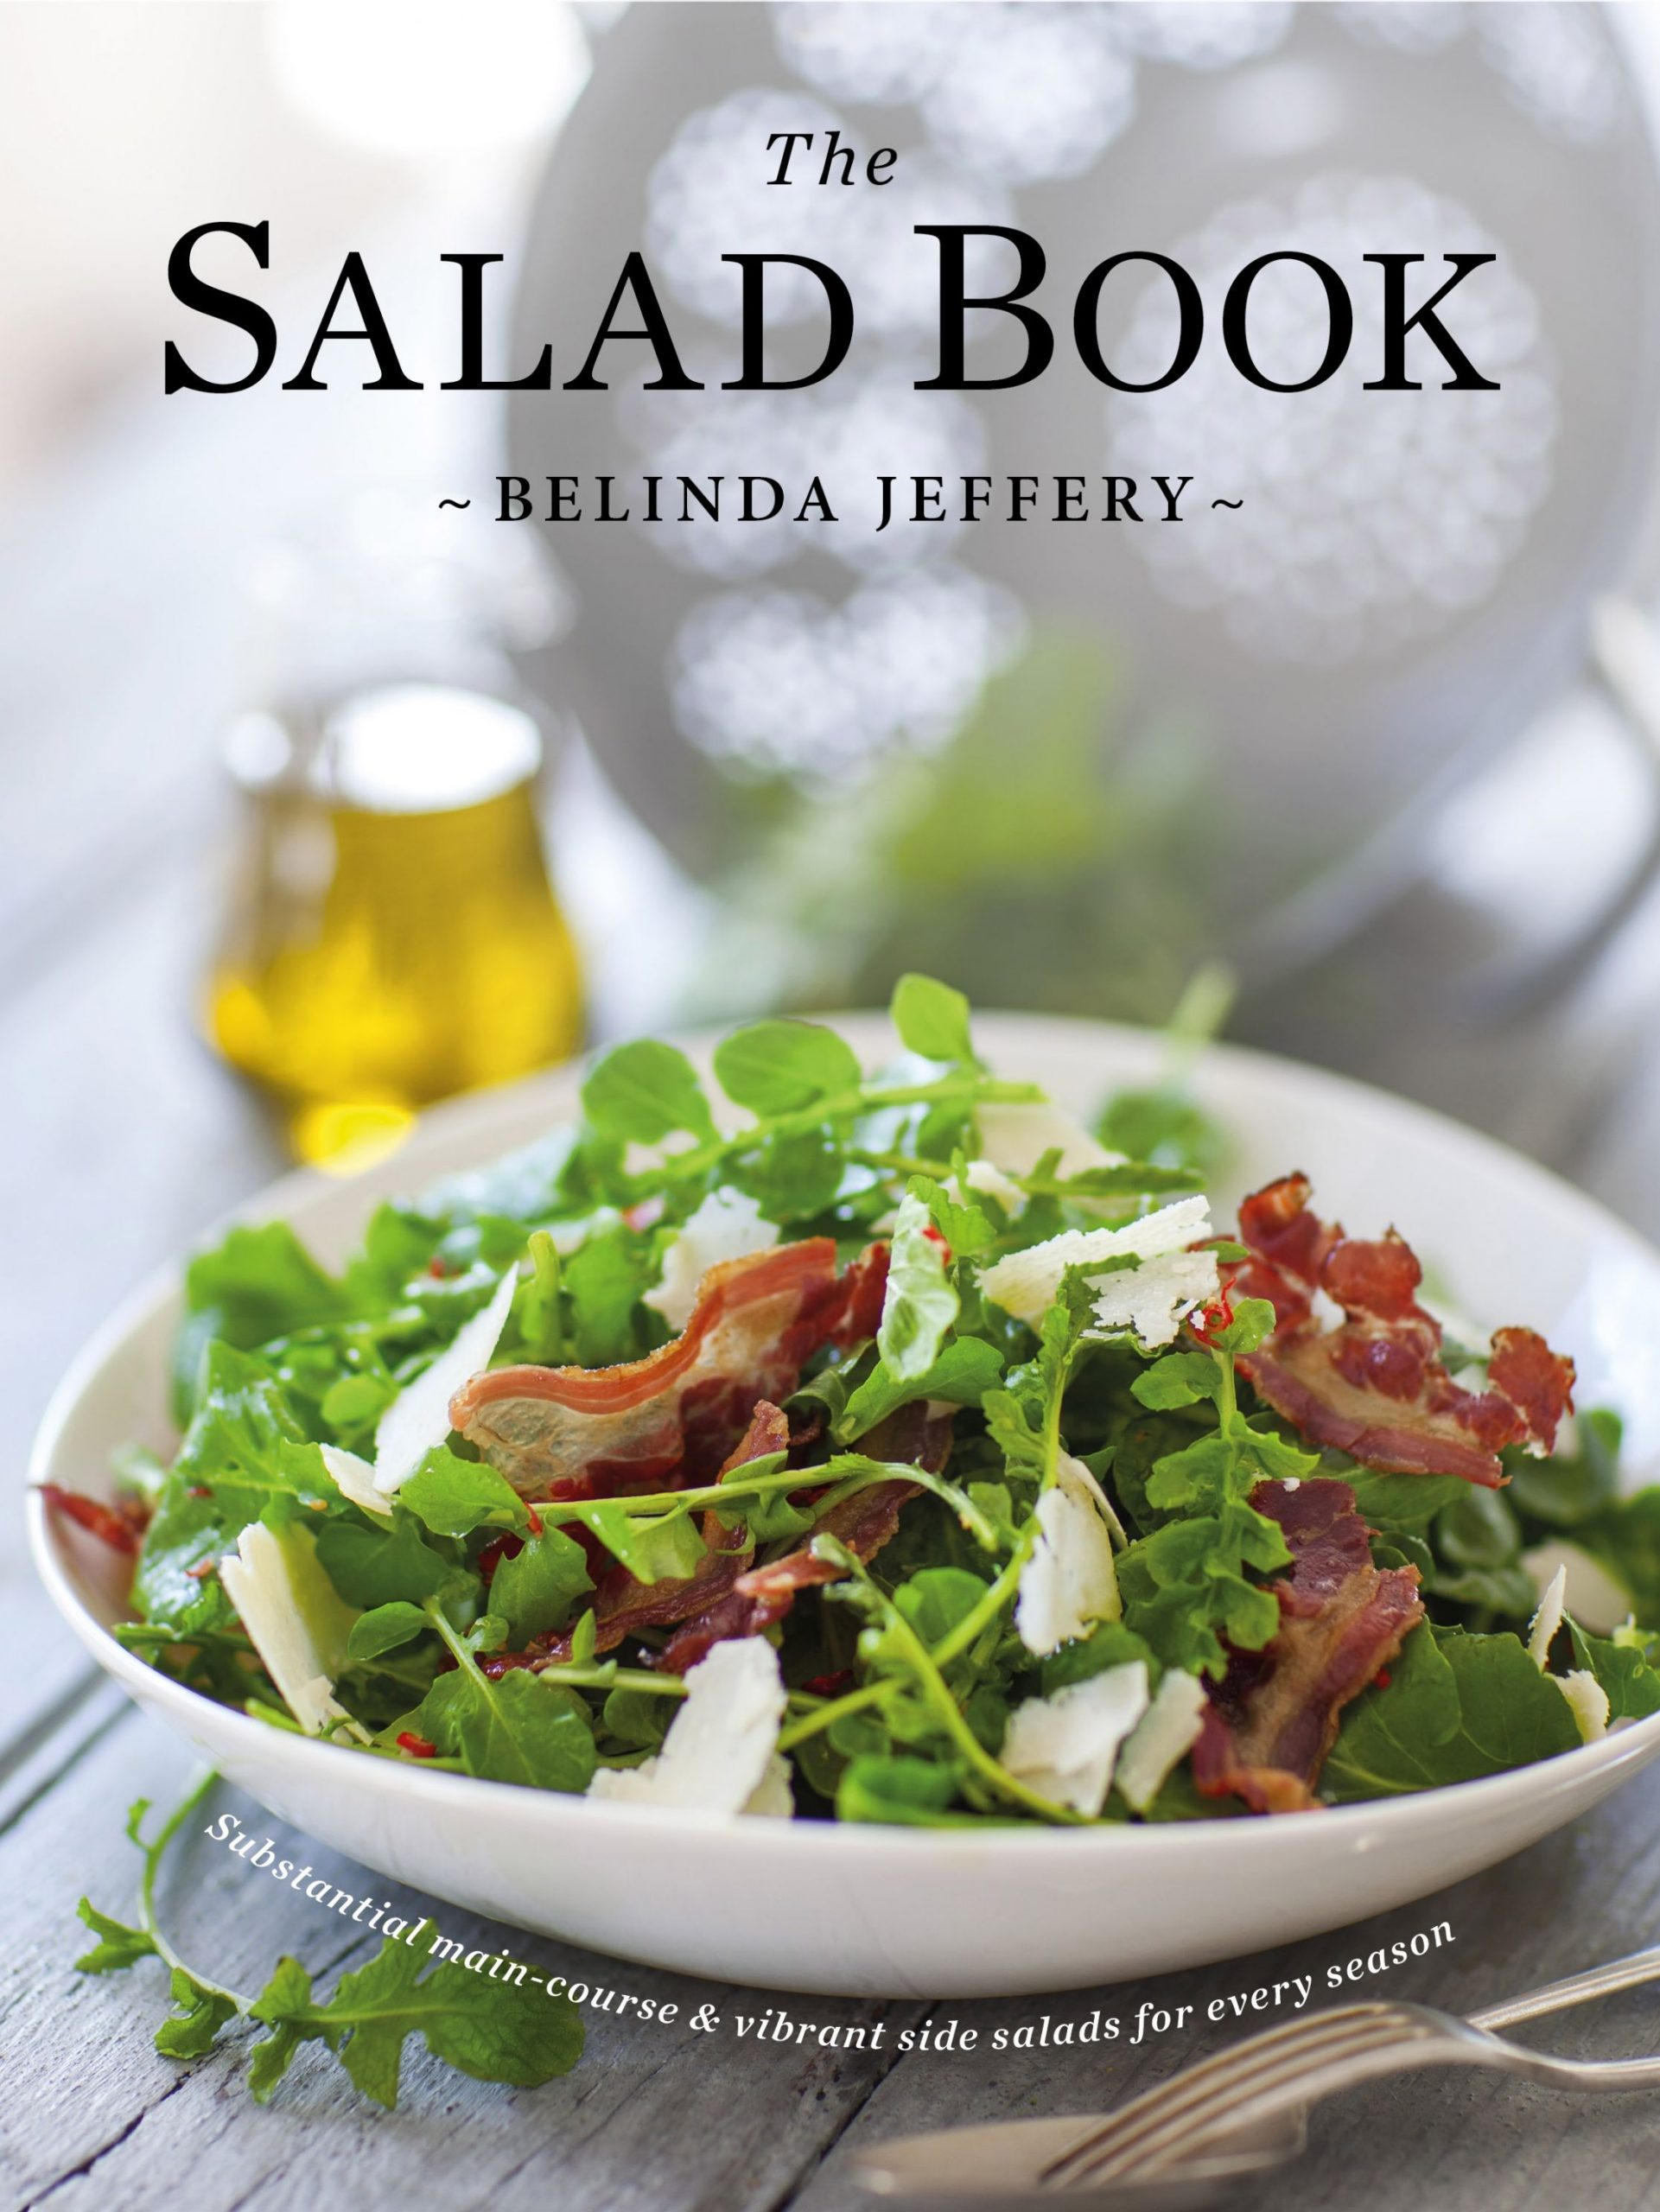 The Salad Book by Belinda Jeffery - Penguin Books Australia - Salad Recipes Book